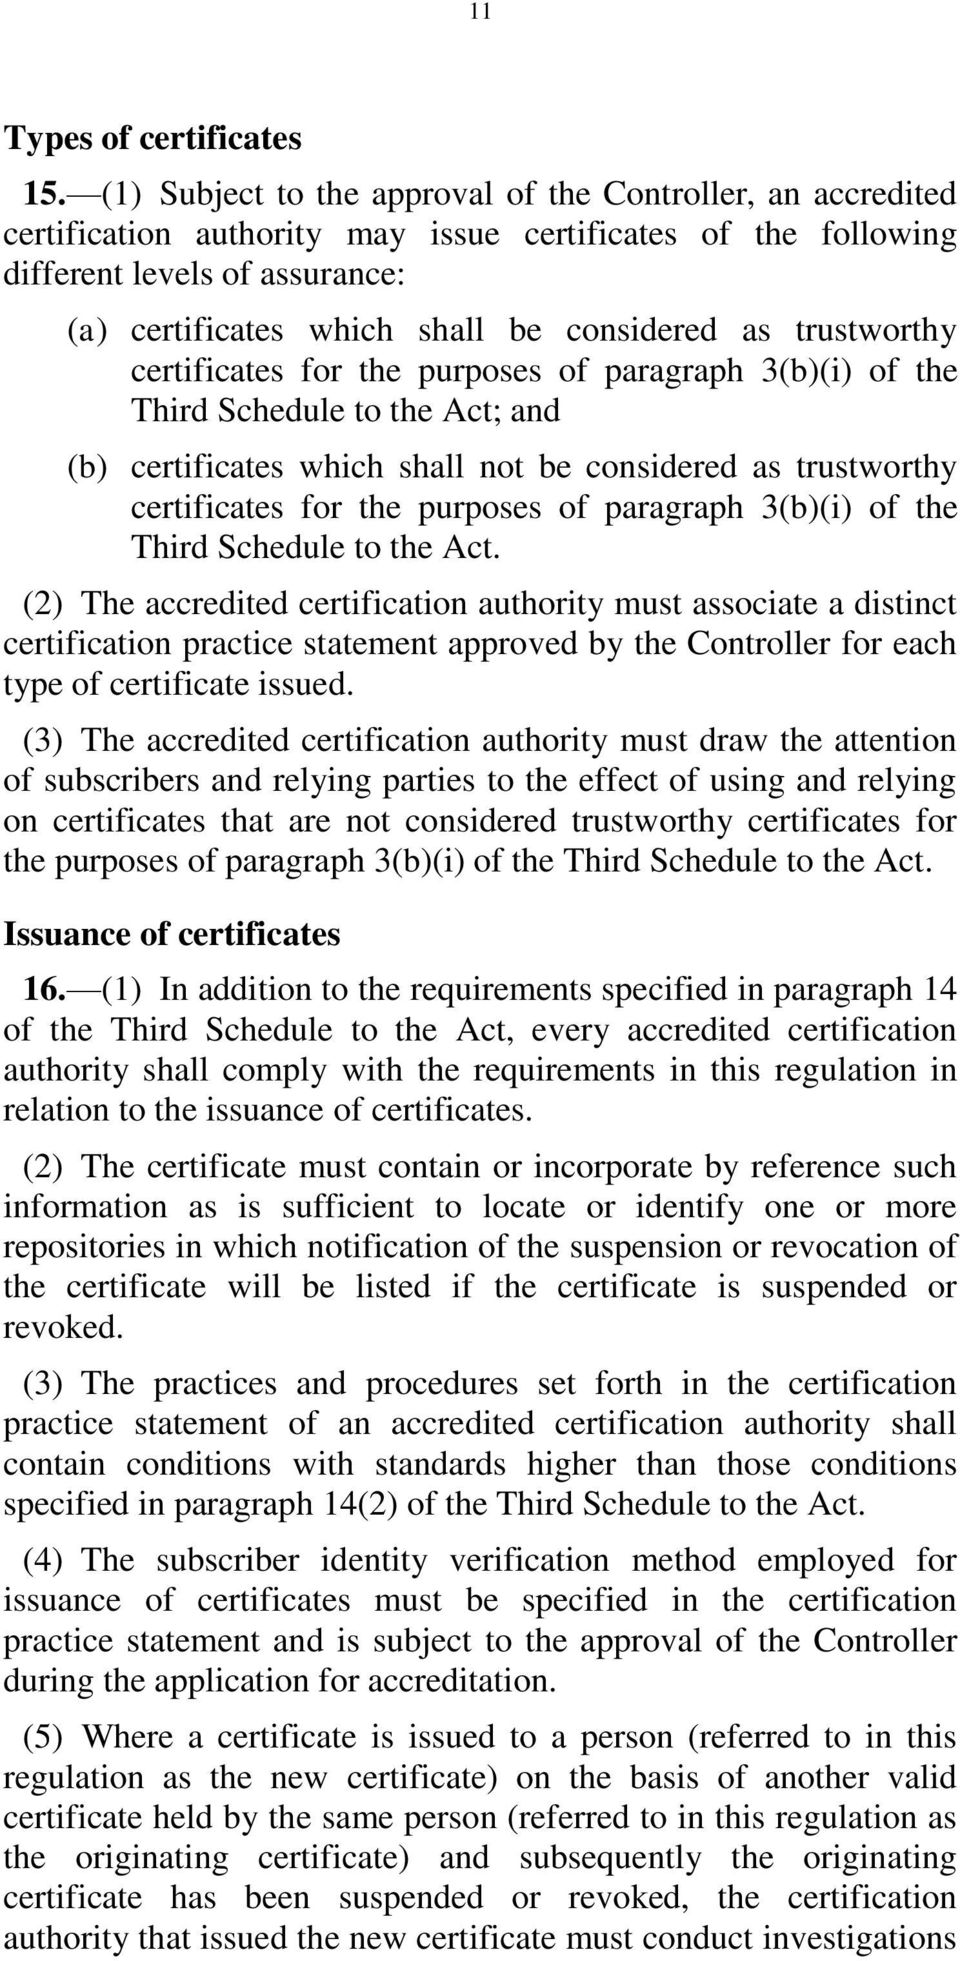 as trustworthy certificates for the purposes of paragraph 3(b)(i) of the Third Schedule to the Act; and (b) certificates which shall not be considered as trustworthy certificates for the purposes of